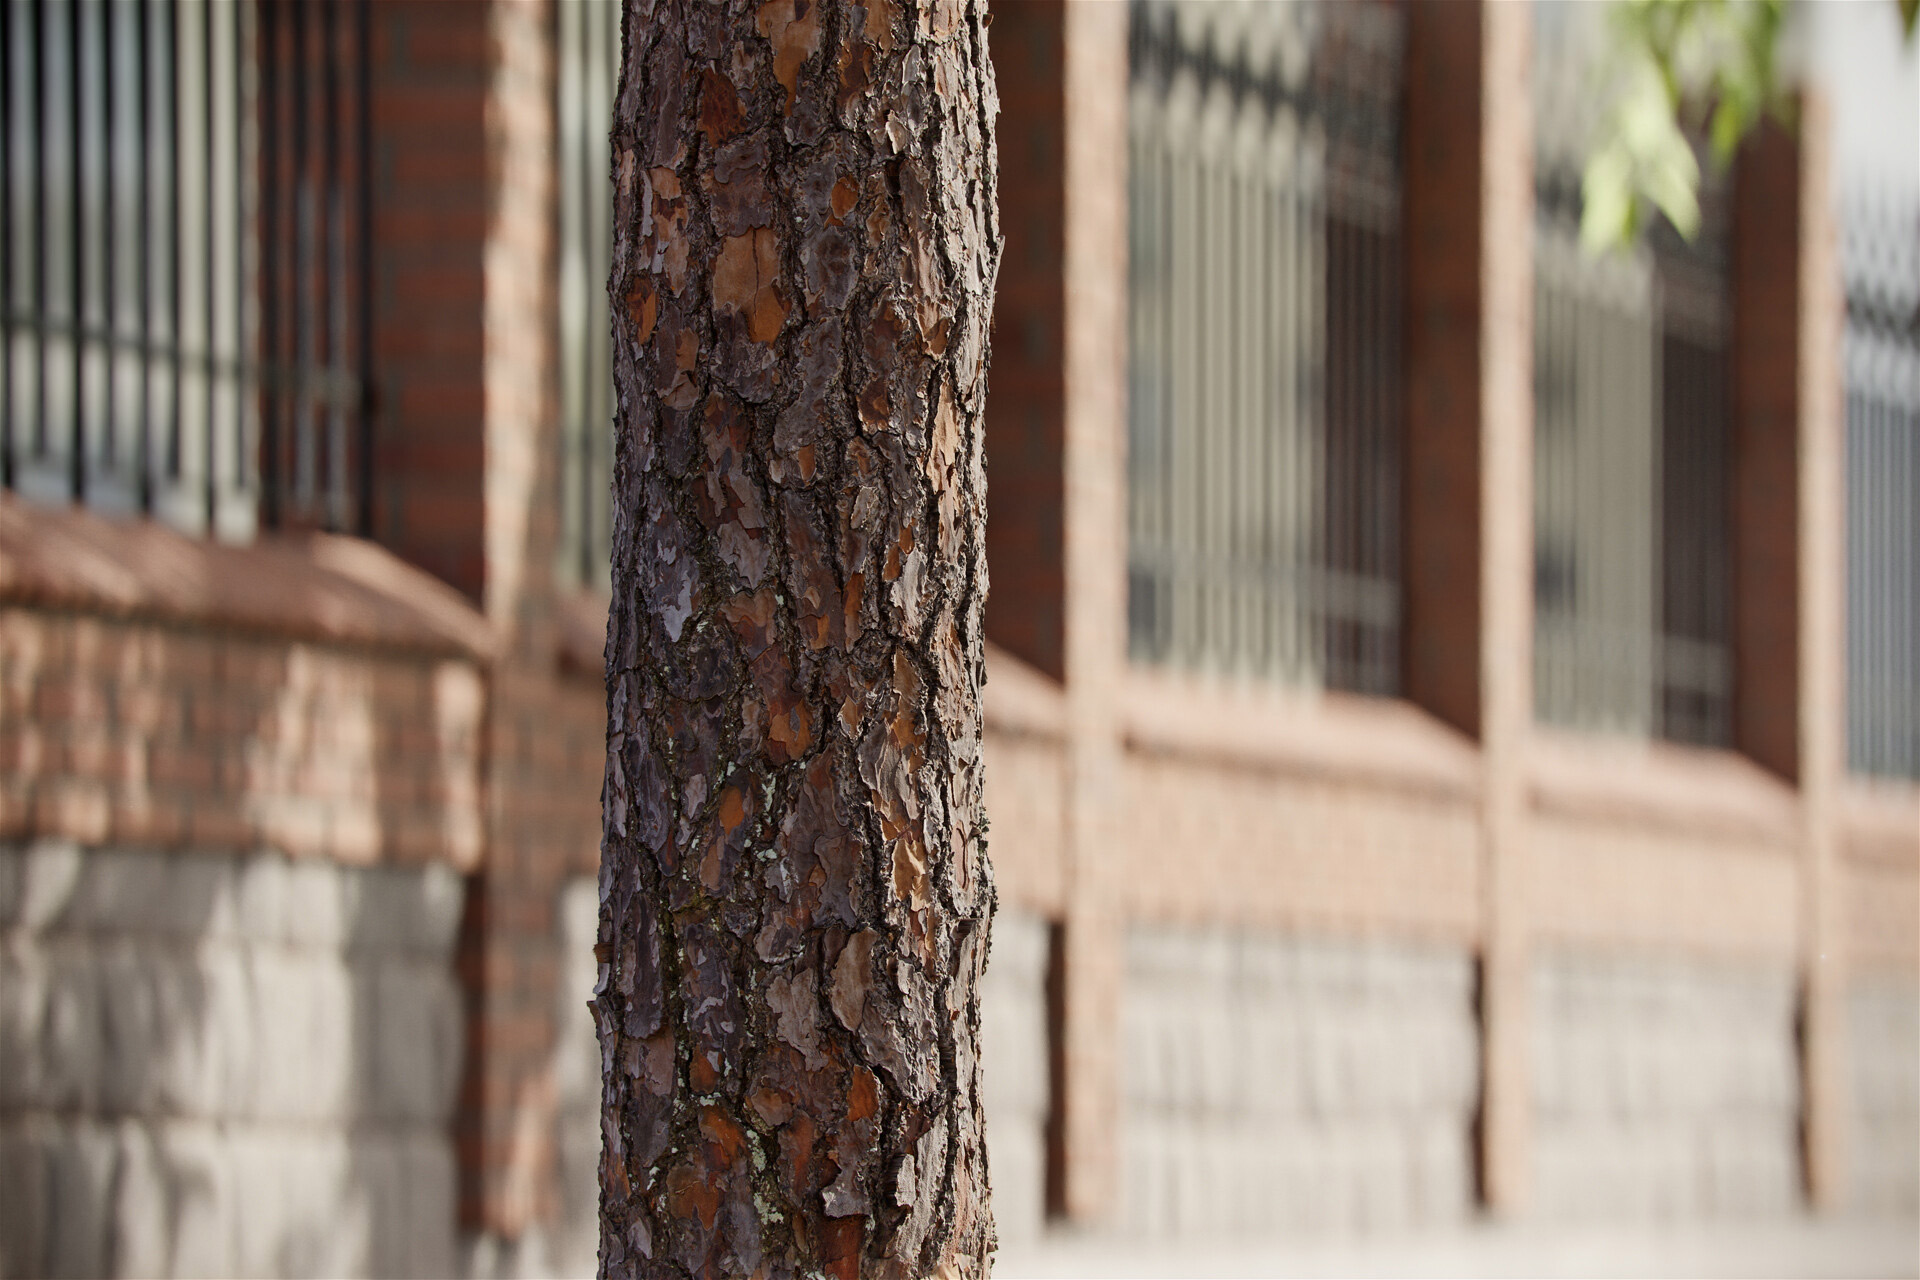 The image shows a pine tree trunk render made using Friendly Shade textures